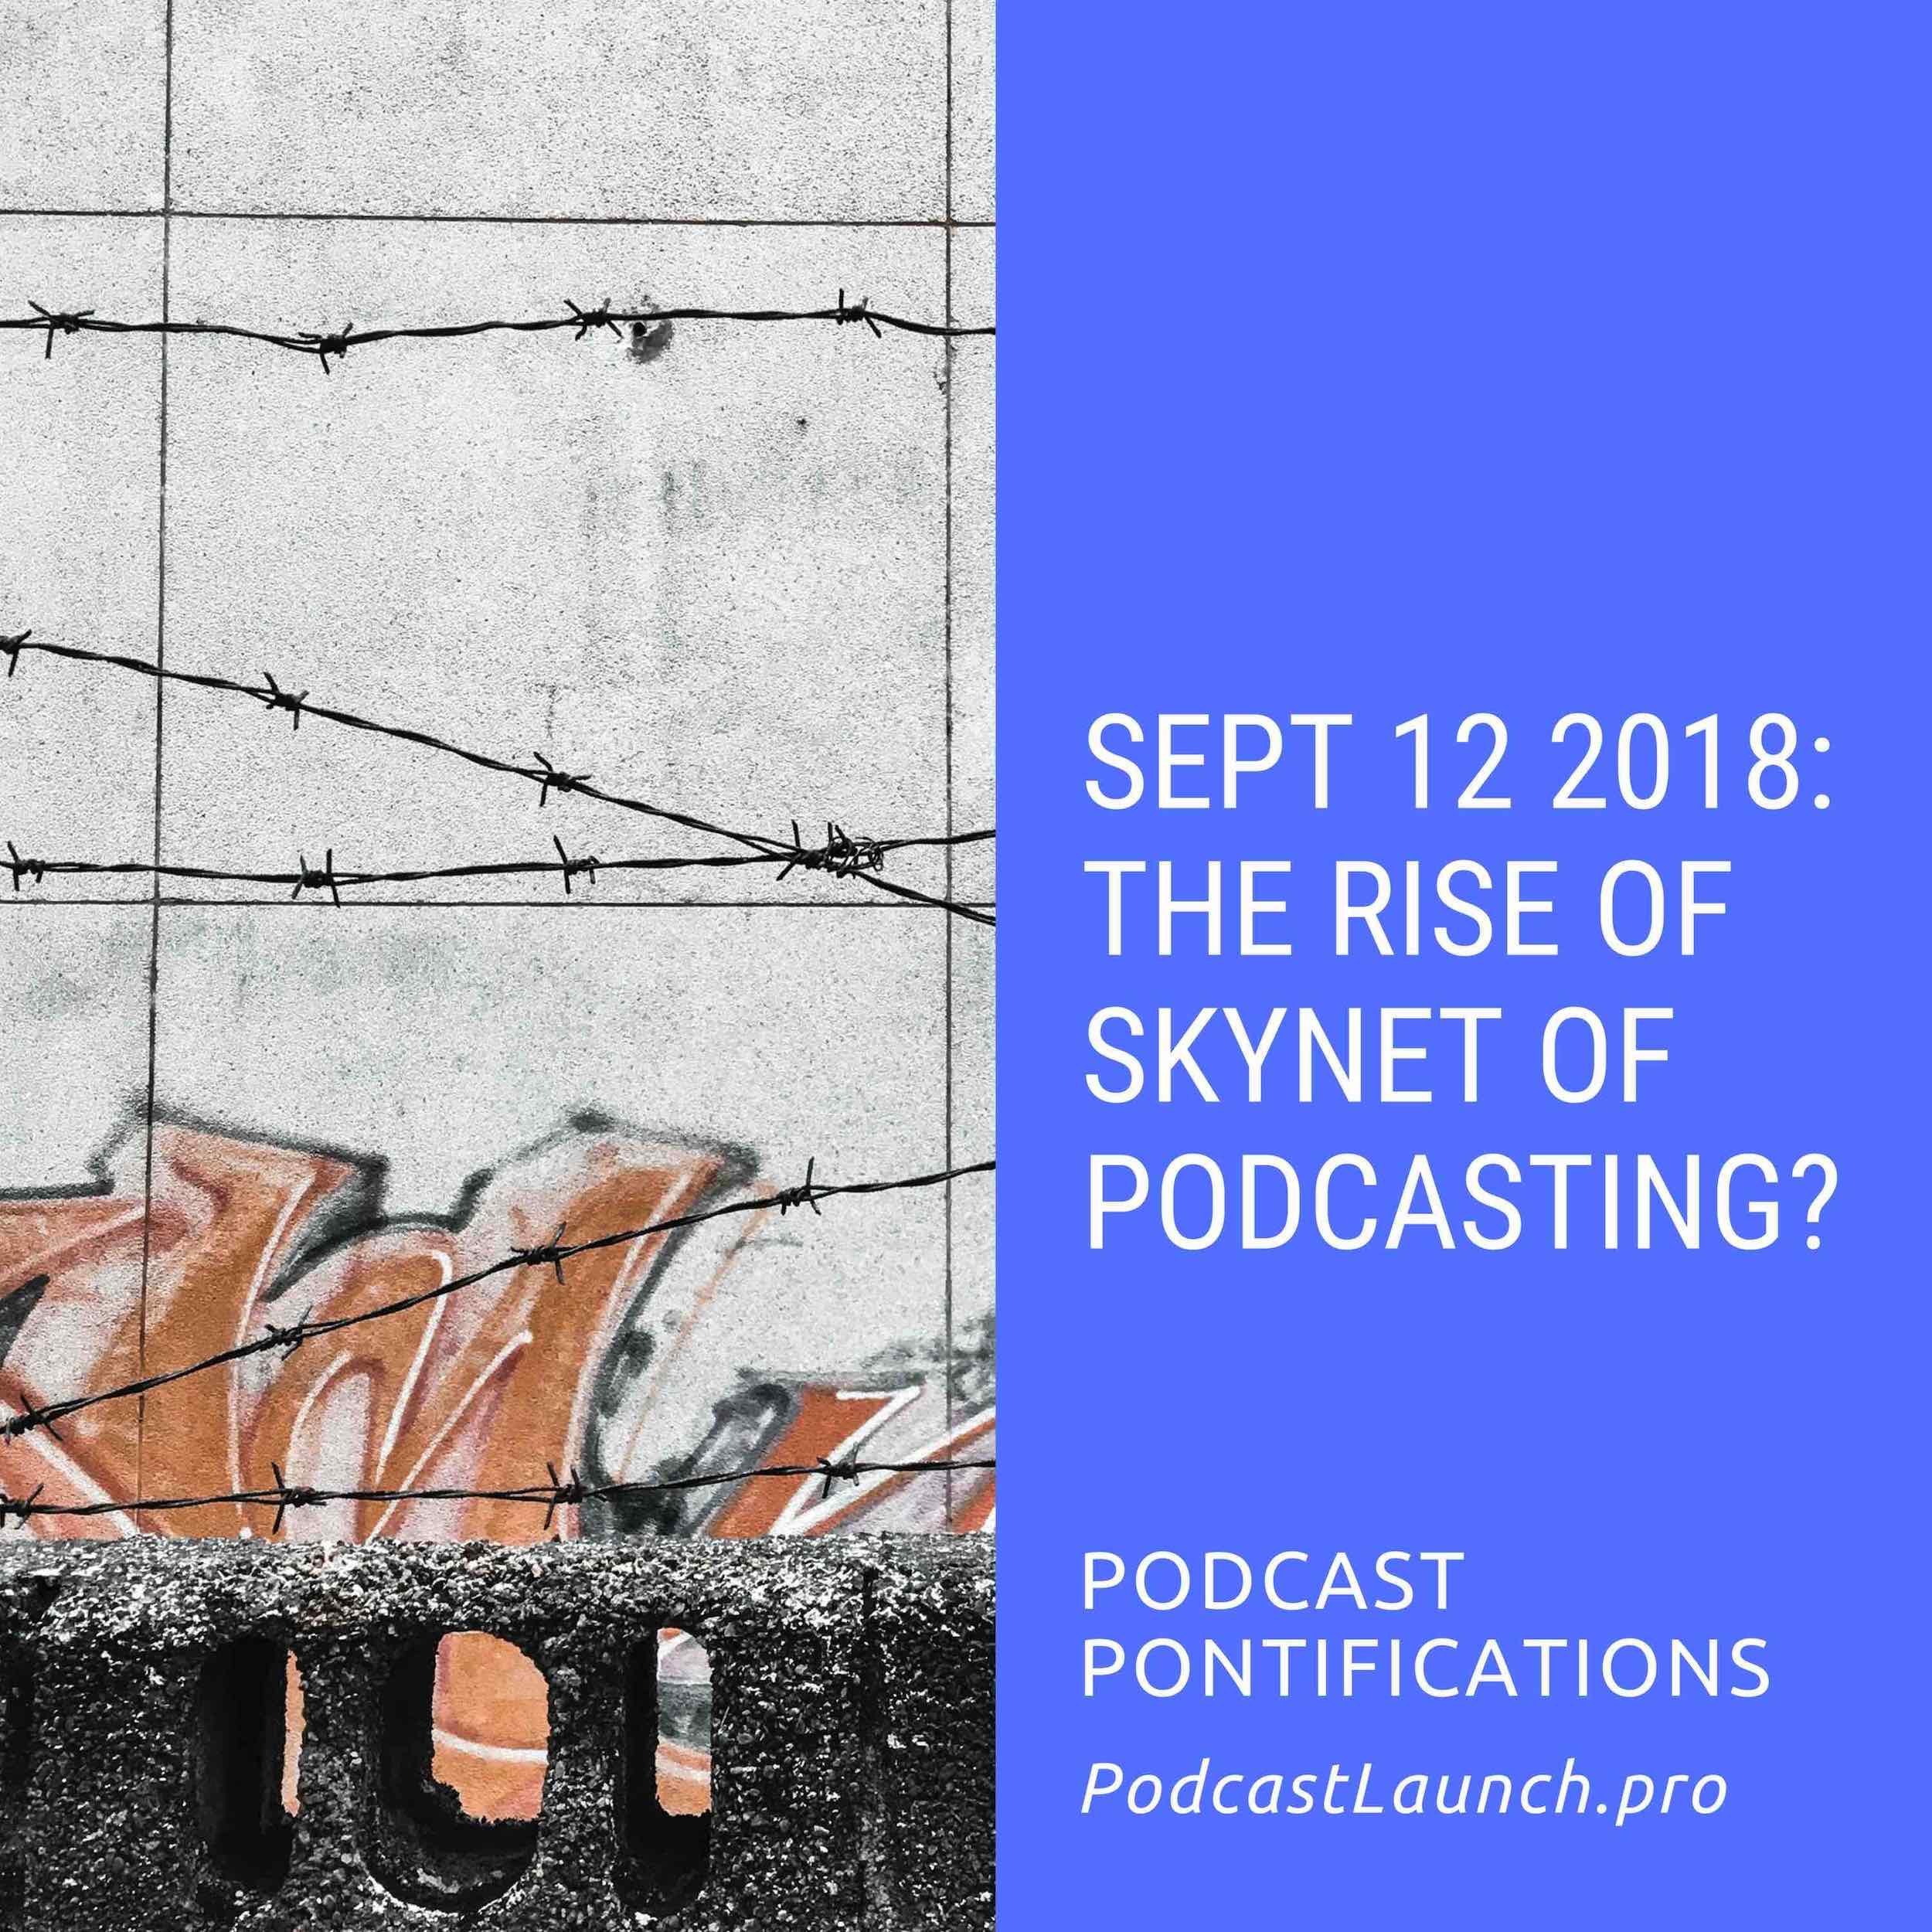 Sept 12 2018: The Rise of Skynet of Podcasting?